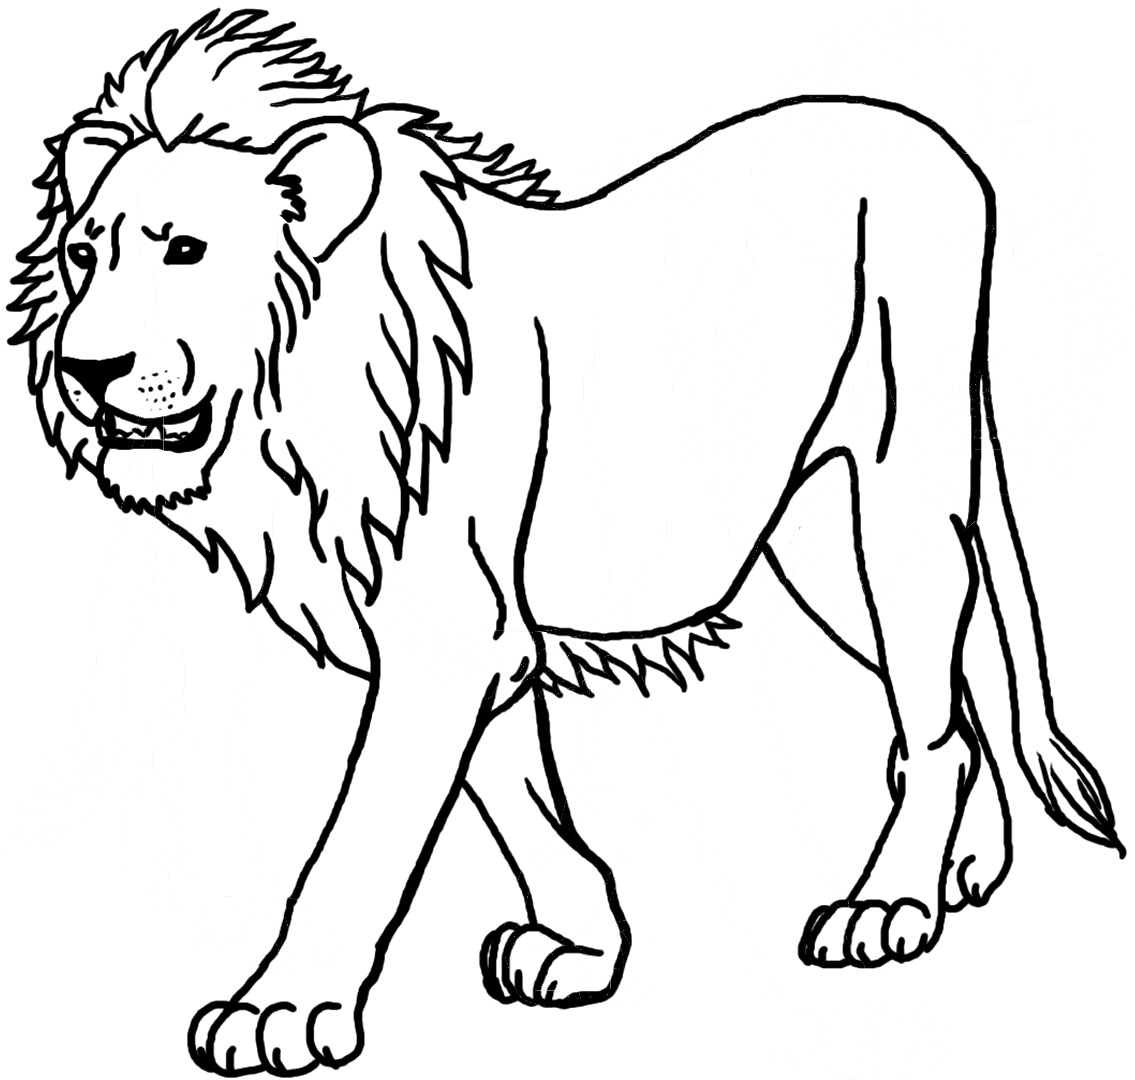 1135x1080 Printable Lion Coloring Pages Click The African Lion To View